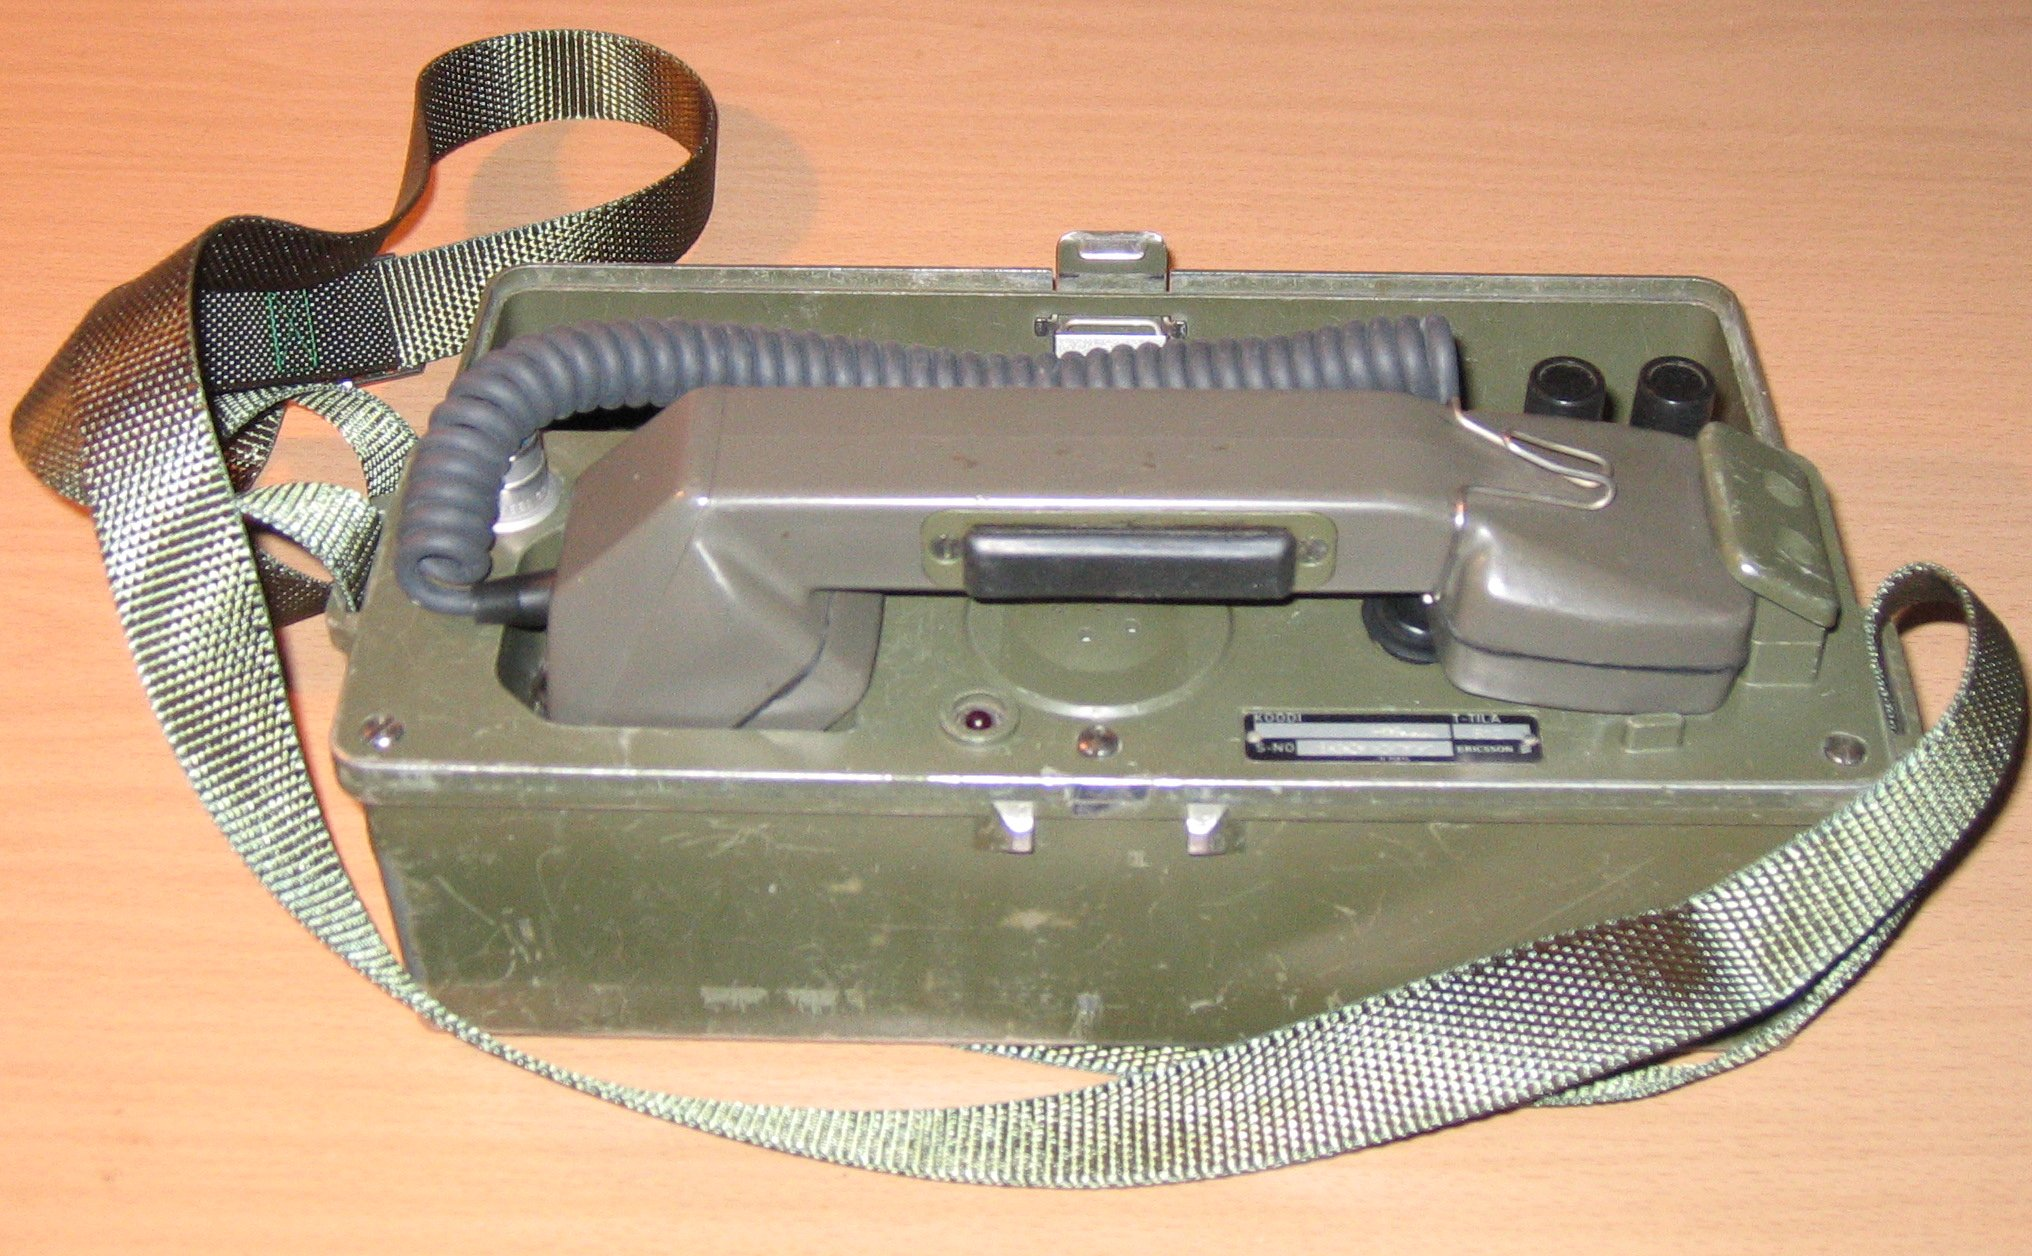 78fieldtelephone